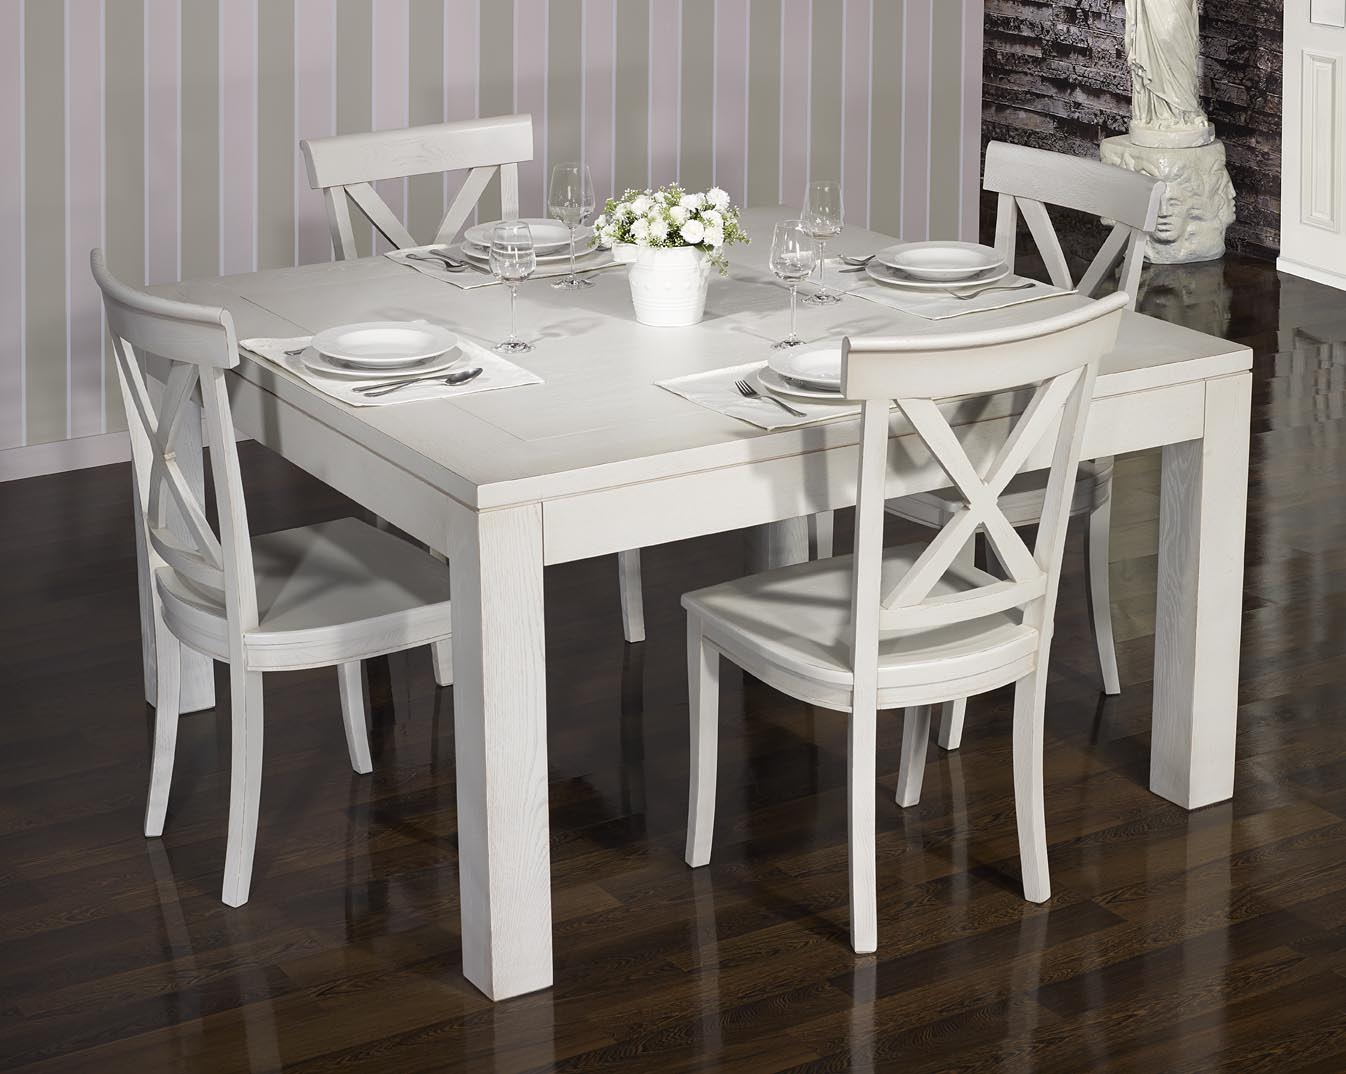 Table de salle manger 140 140 contemporaine en ch ne finition ch ne bross gris perle meuble - Table salle a manger chene massif contemporain ...